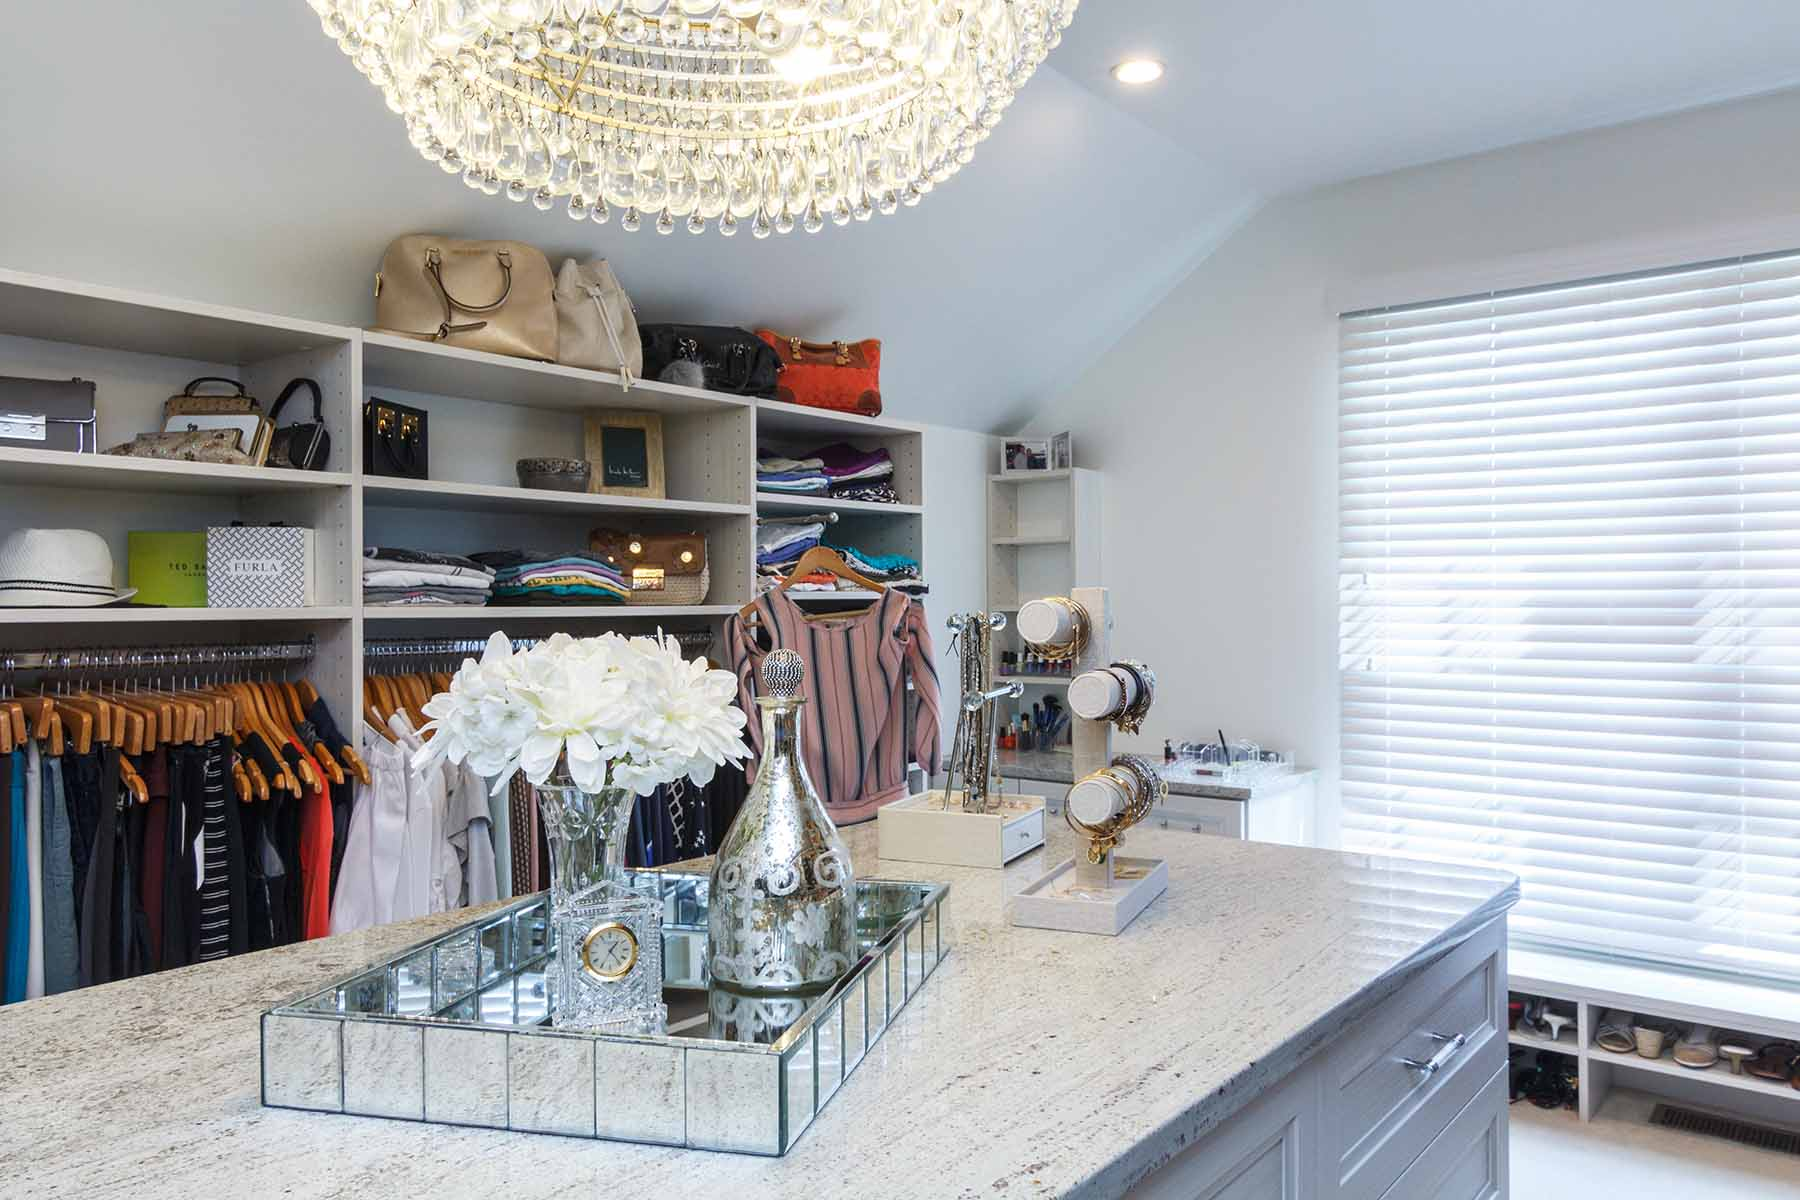 The Perfect Match: How To Know Which Closet Company To Use?